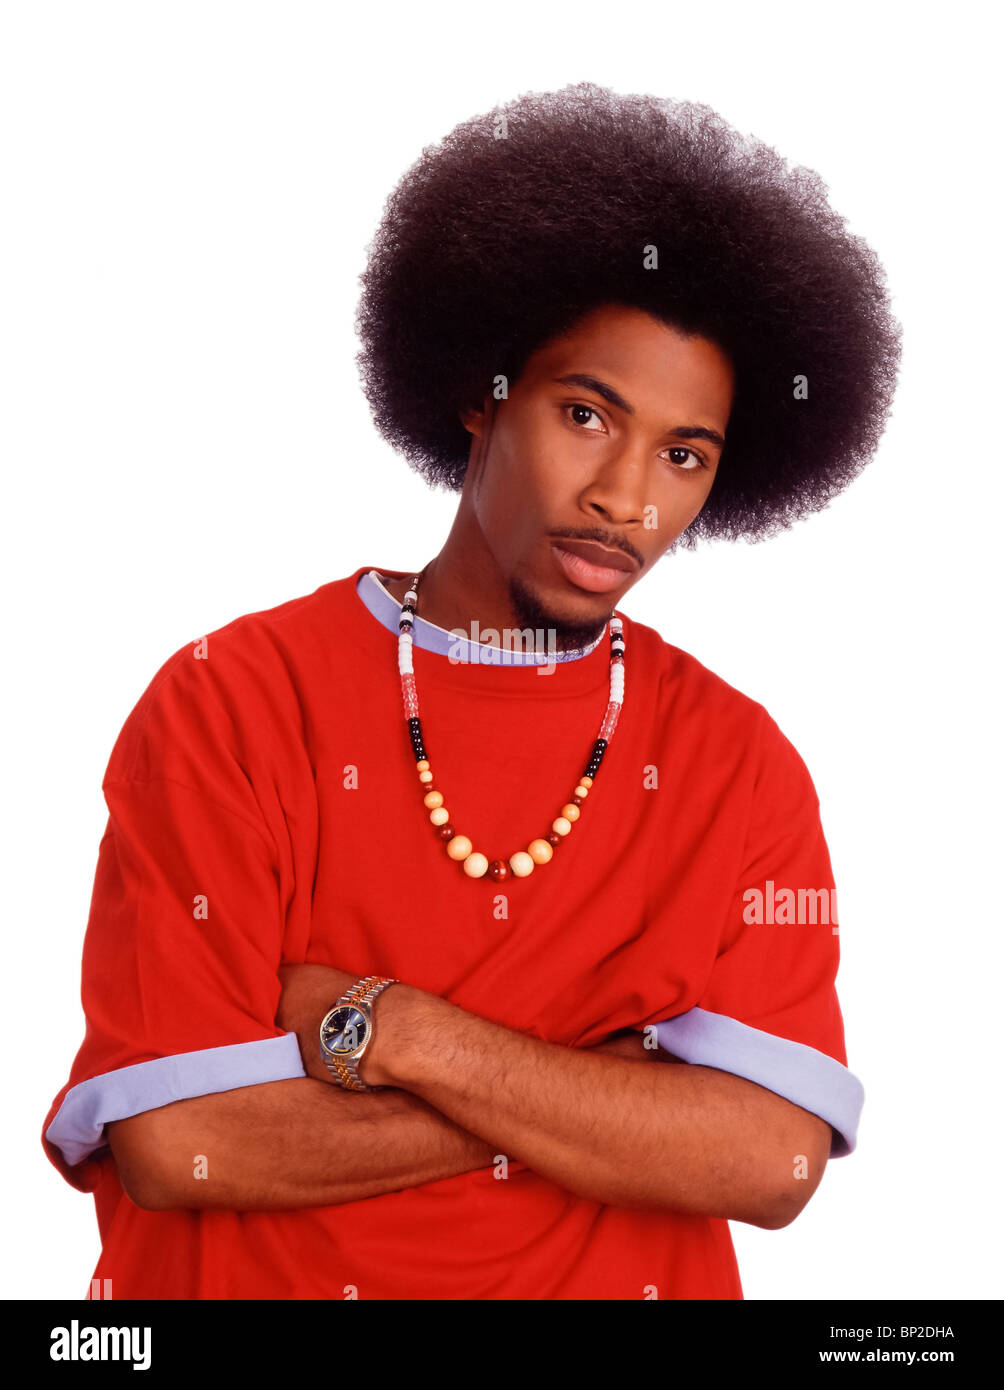 Teenage African American Boy Stock Photo Alamy